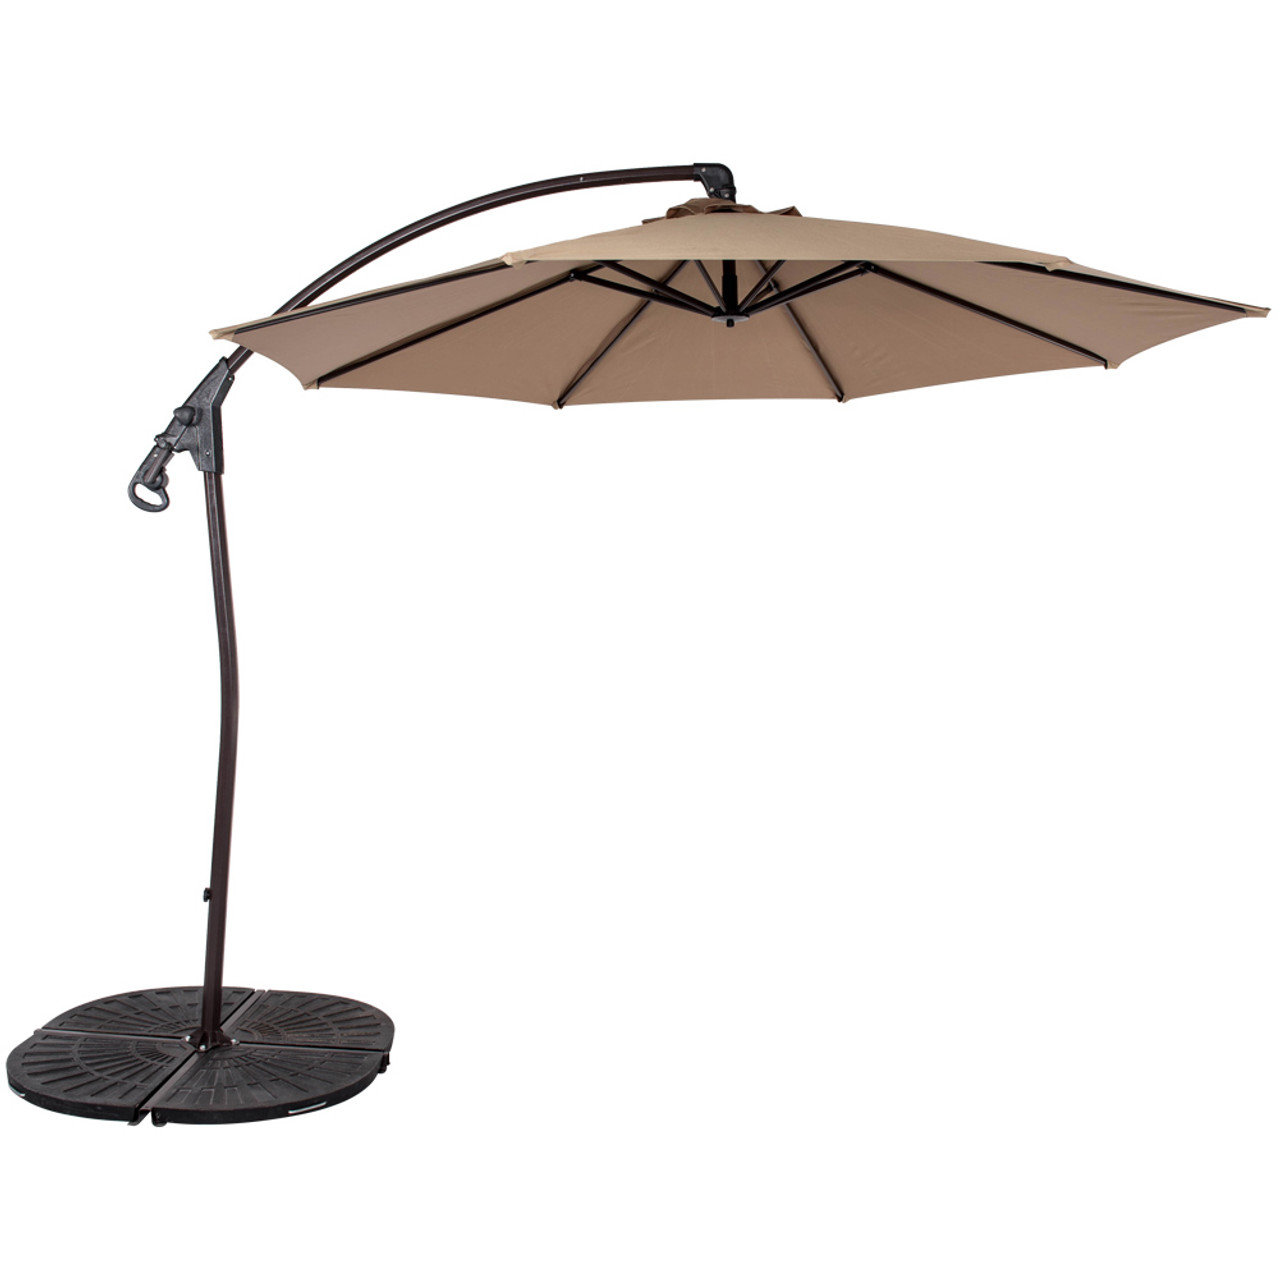 10 Feet Aluminum Offset Patio Umbrella With Hand Push, 8 Steel Ribs (Khaki)